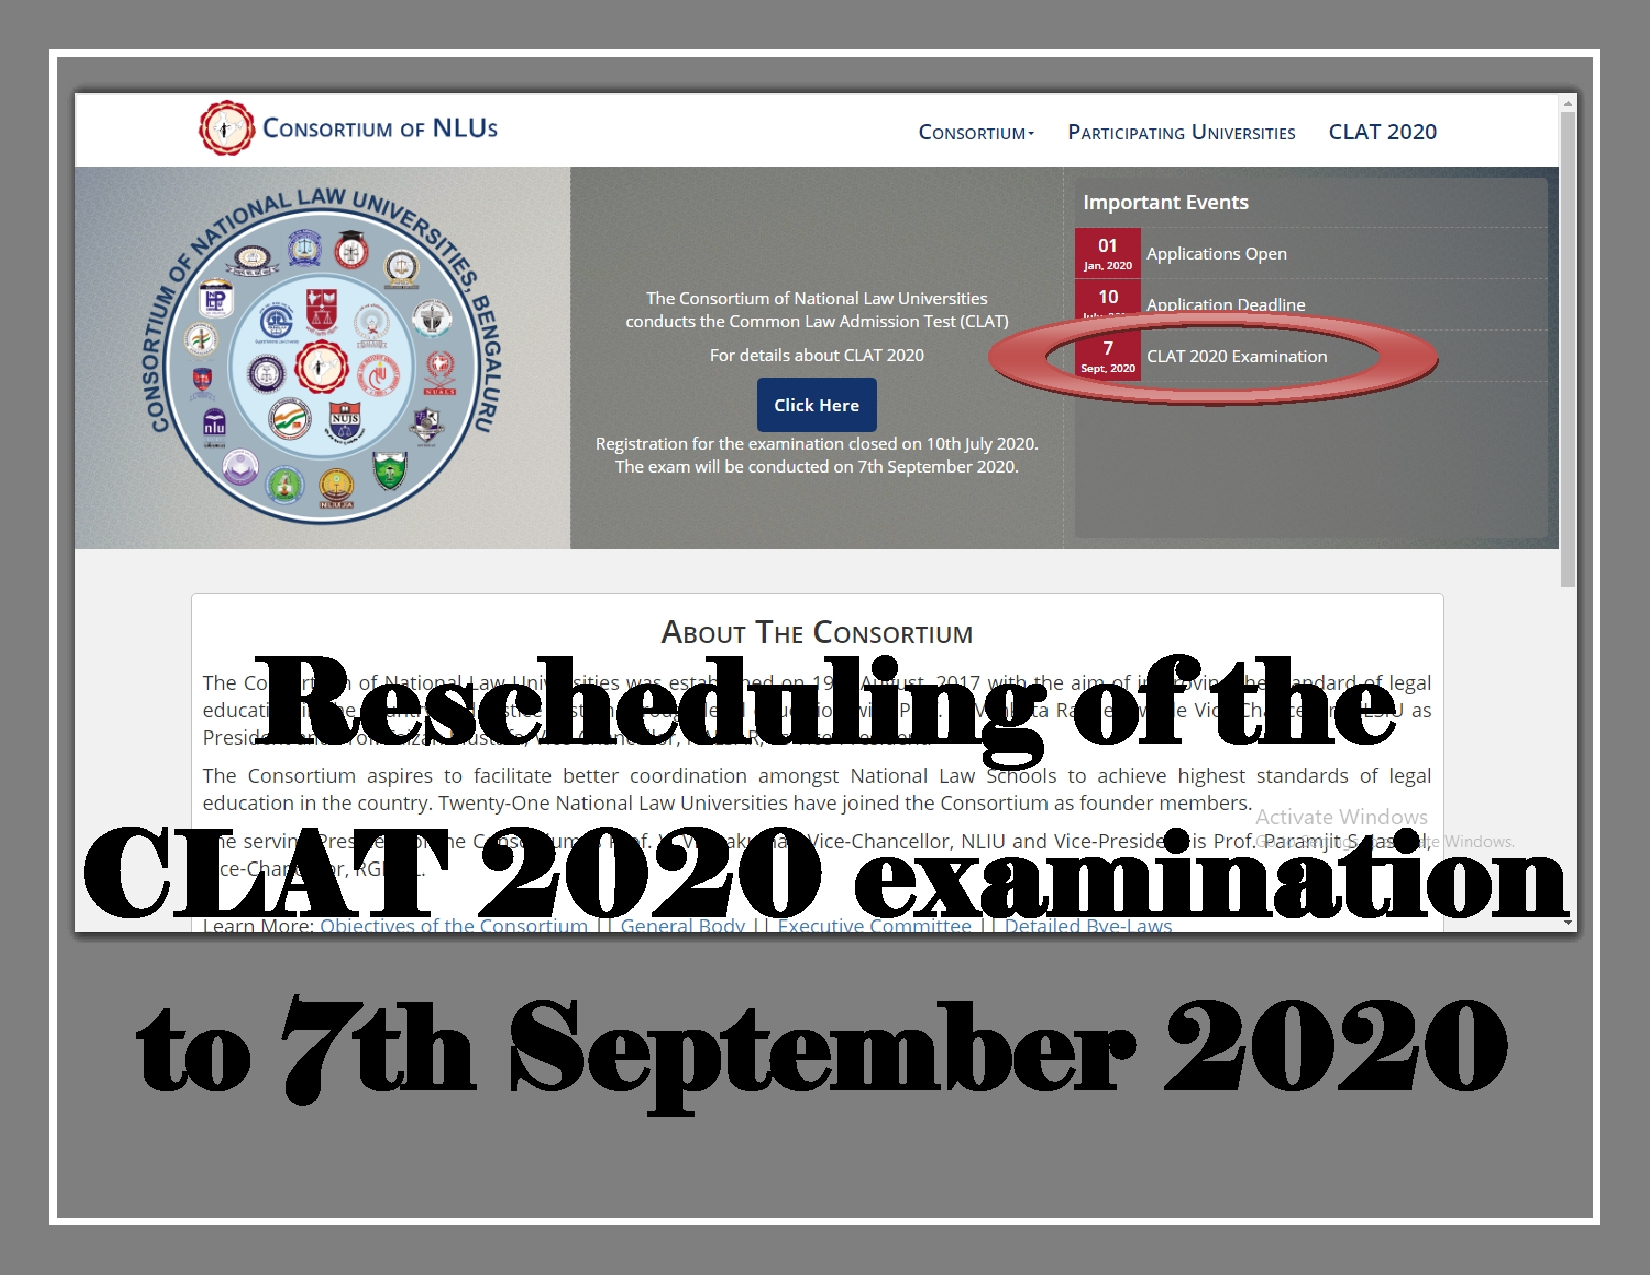 Rescheduling of the CLAT 2020 examination to 7th September 2020